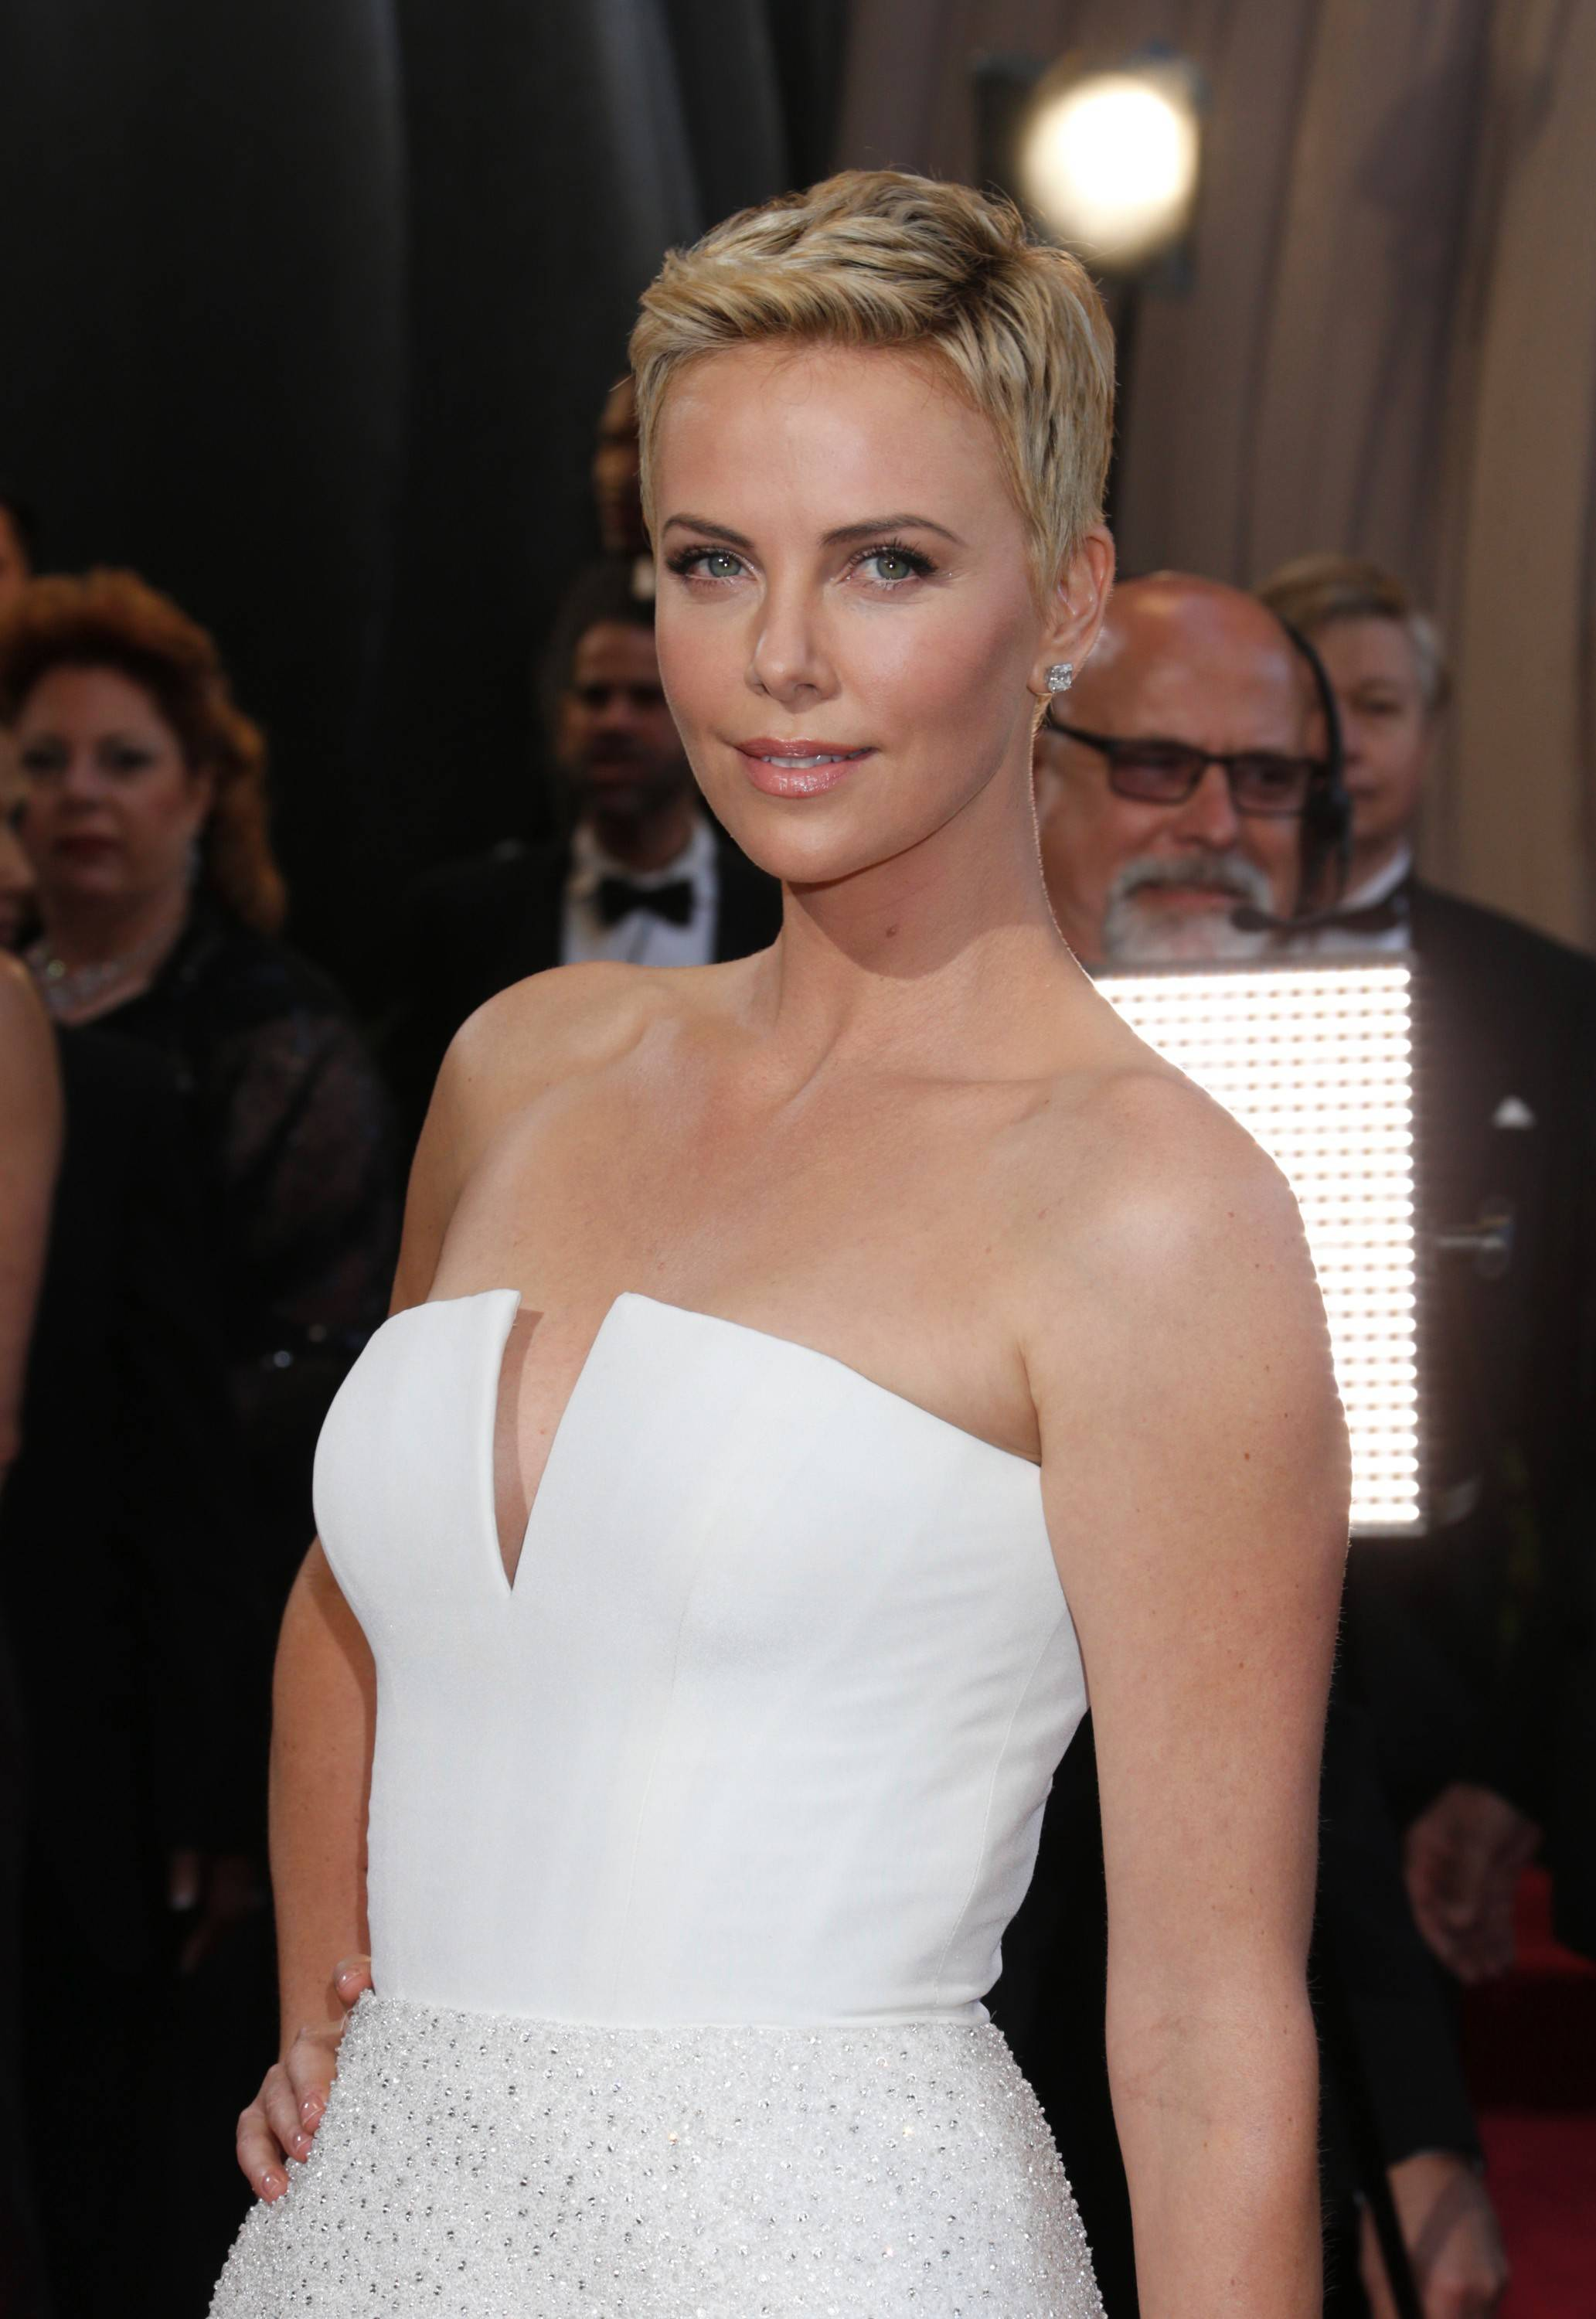 An Arkansas judge who disclosed confidential details about an adoption involving actress Charlize Theron has agreed to a lifetime ban from the state bench.